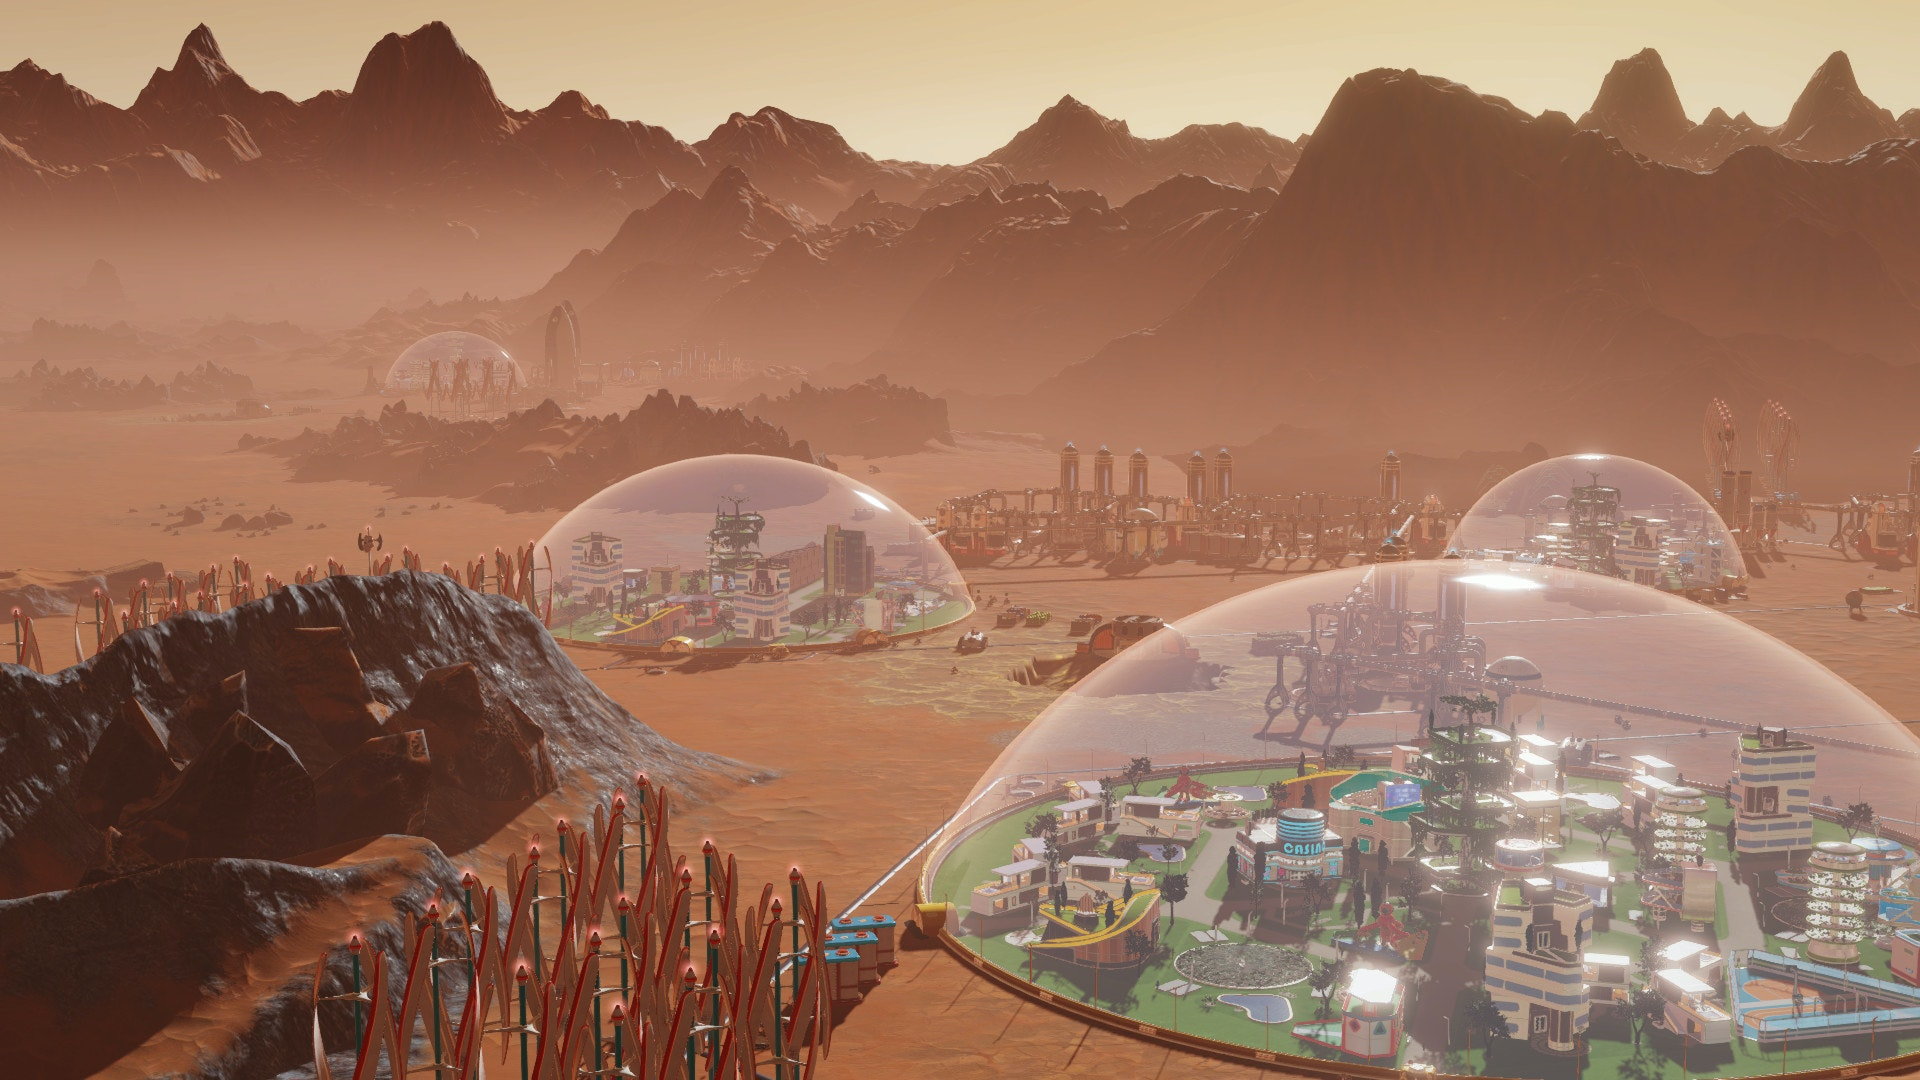 We are working with Paradox Interactive to bring you a new chapter in the Surviving Mars story.